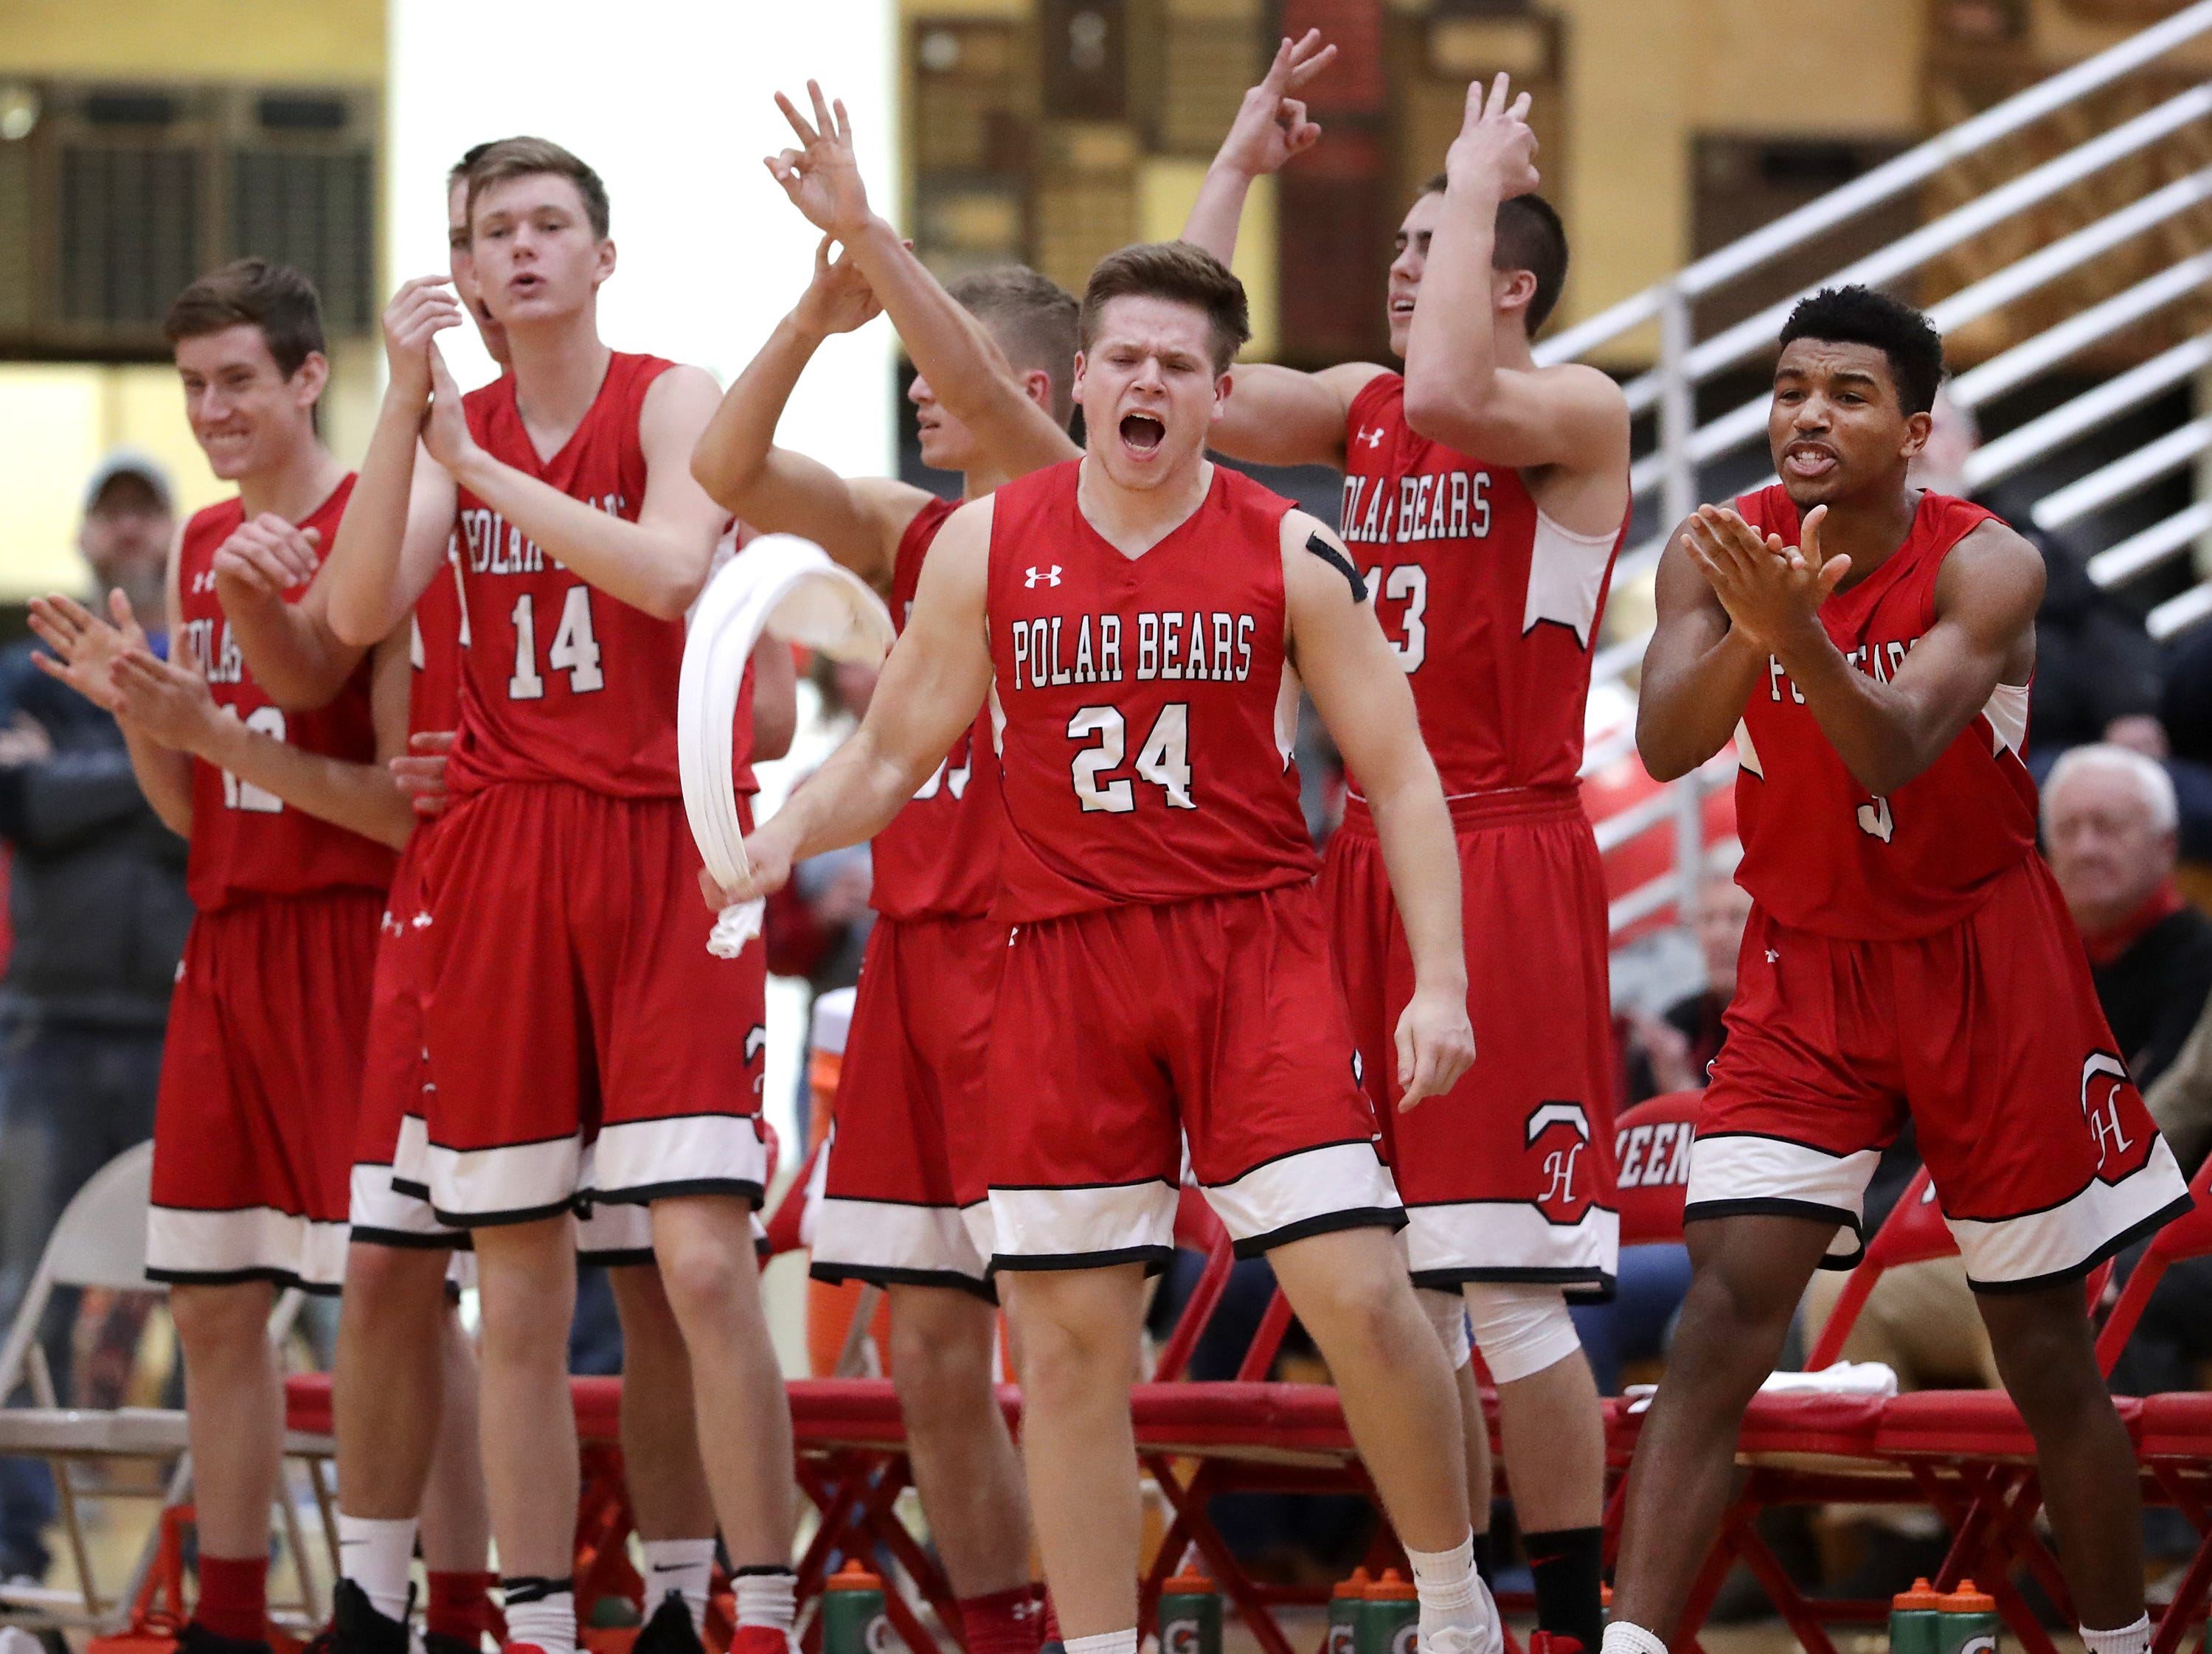 Neenah High School against Hortonville High School during their Fox Valley Association boys basketball game on Friday, November 30, 2018, in Neenah, Wis. Neenah defeated Hortonville 71 to 67 in overtime.